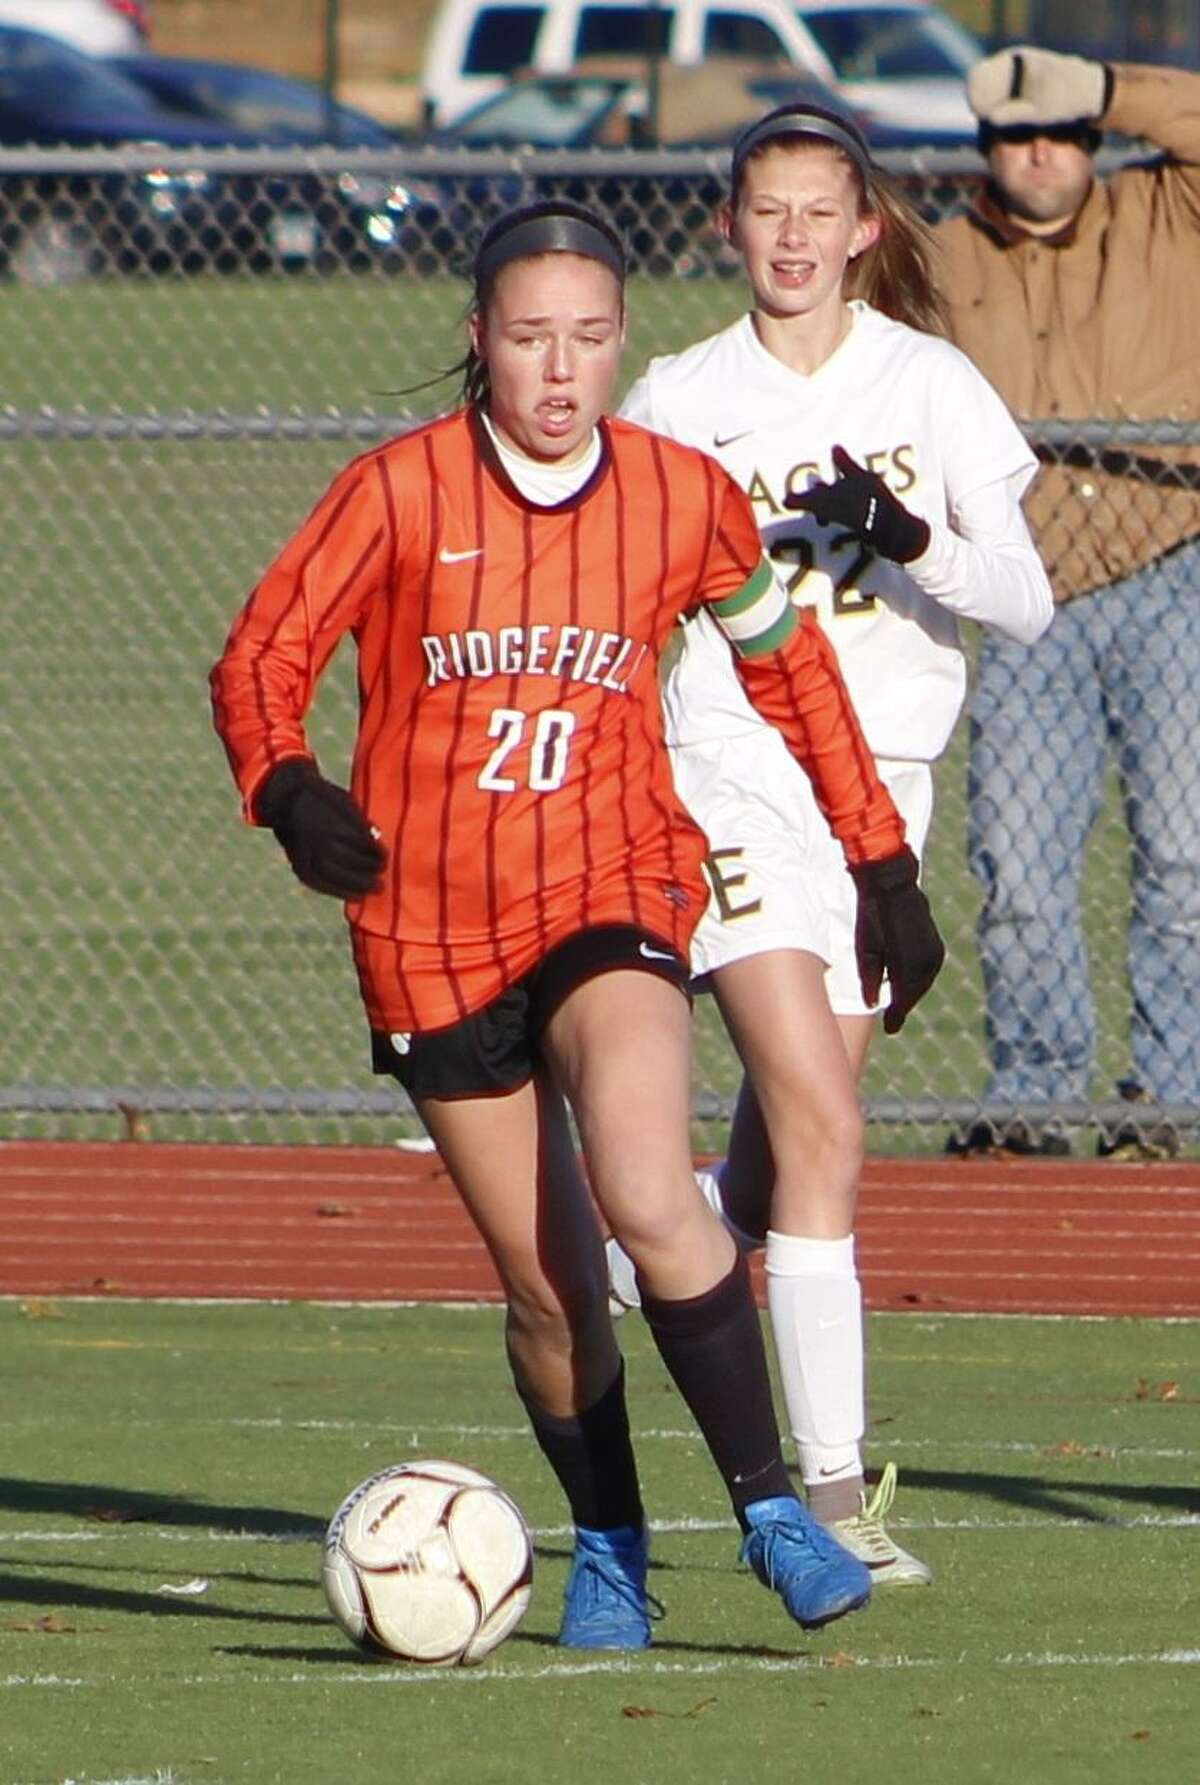 Ridgefield's Erika Linke, front, moves the ball upfield as Enfield's Madison Daly gives chase during the Class LL state quarterfinal girls soccer game at Enfield High School Nov. 11, 2017.